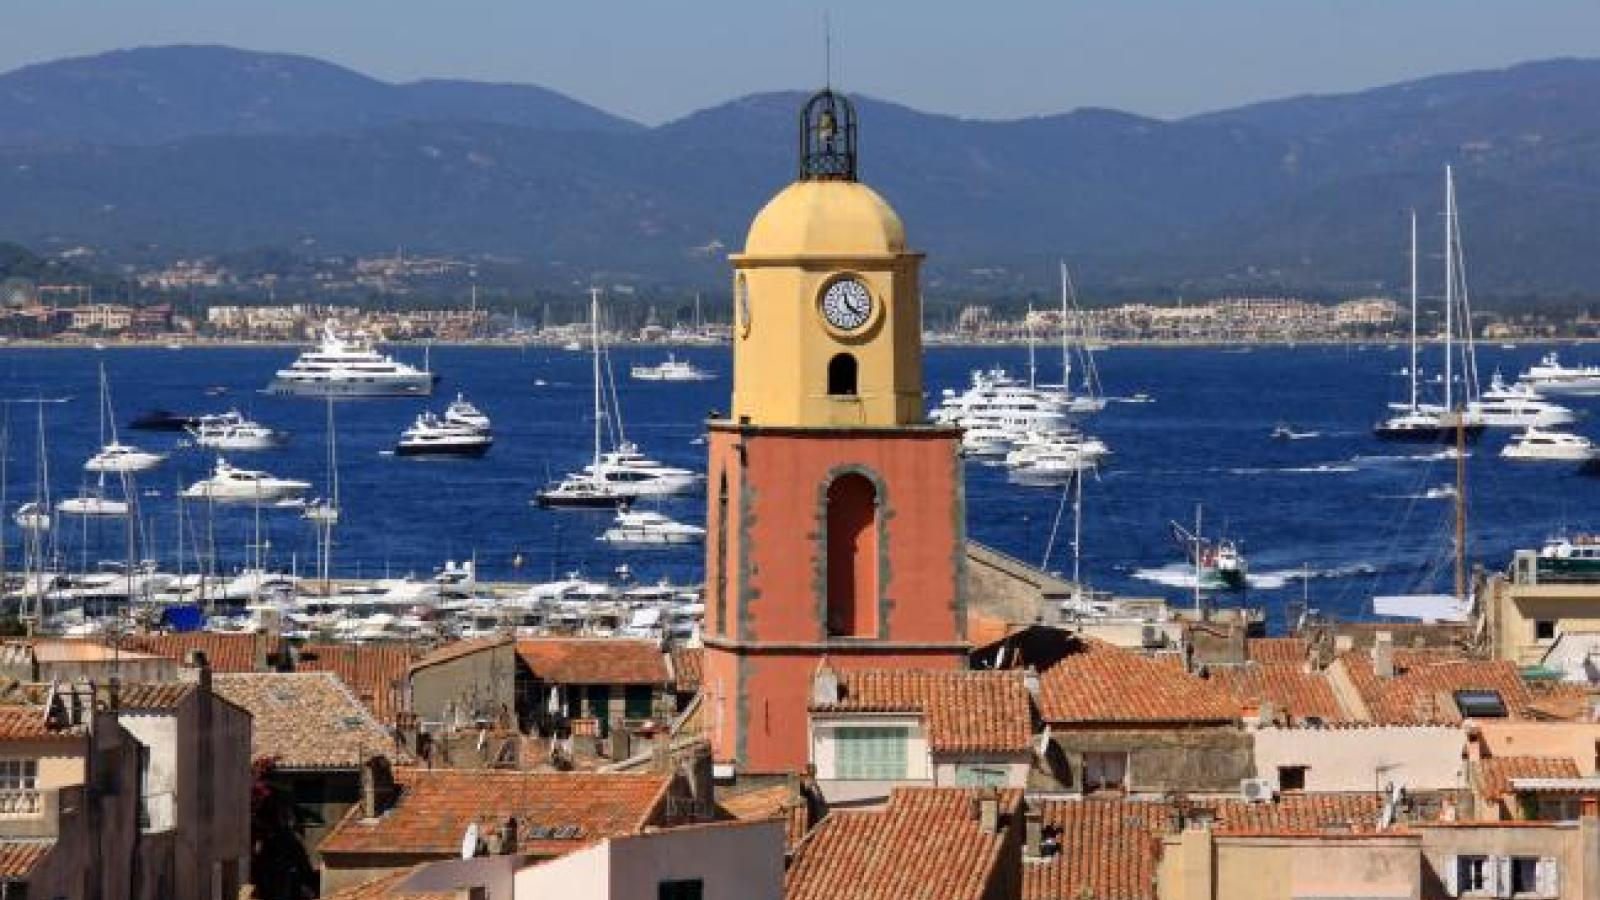 Design hotel Saint Tropez : Sezz welcomes a new summer season